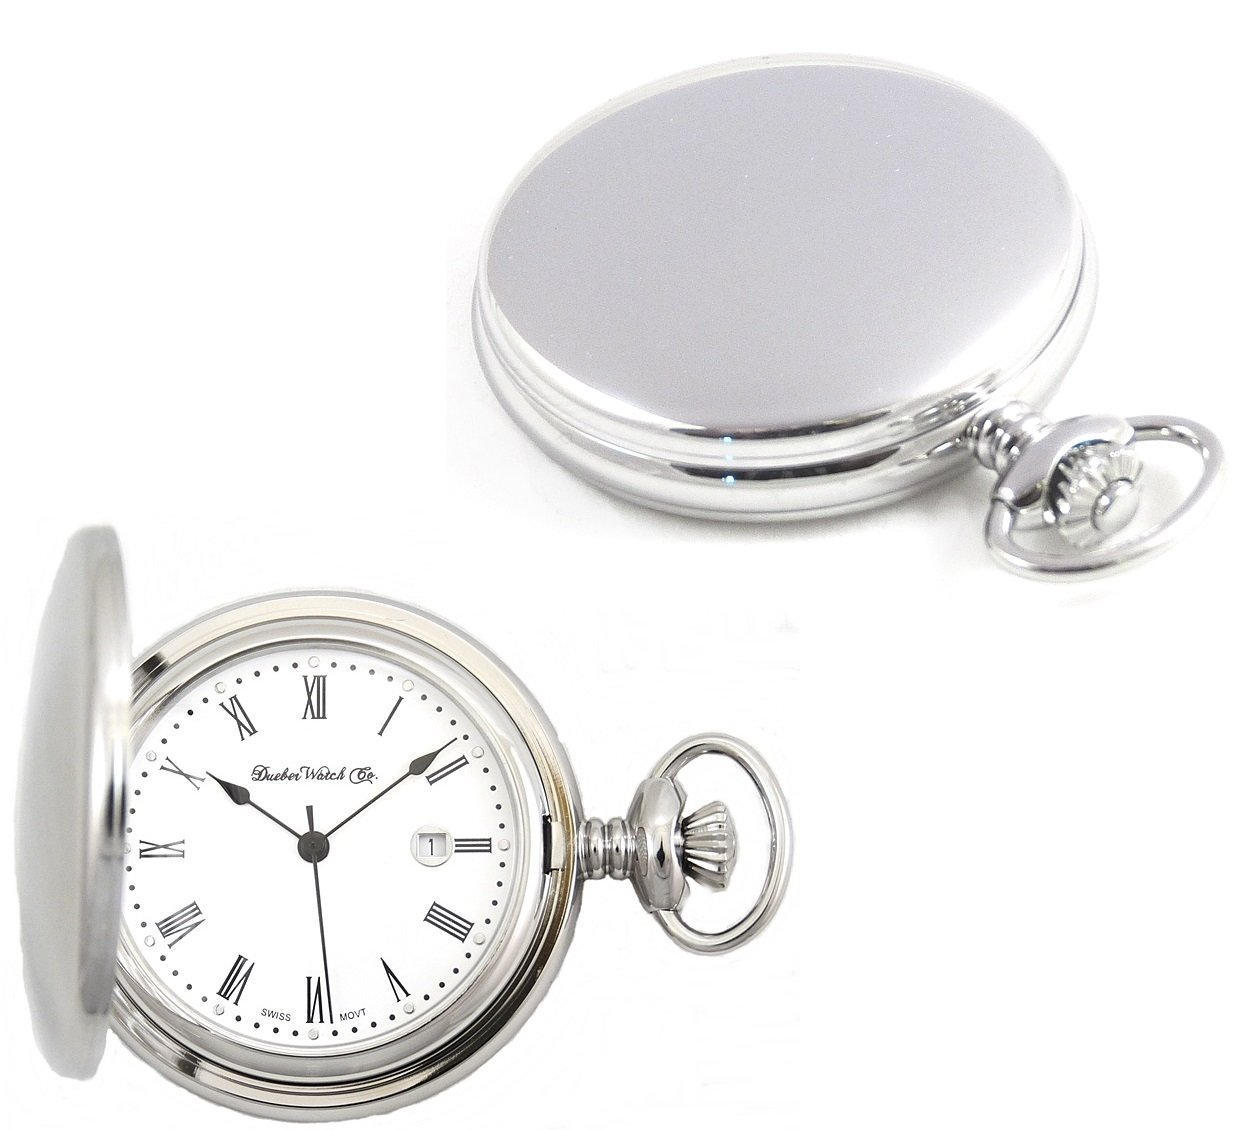 Dueber Watch Co Steel Hunting Case Pocket Watch with Swiss Movement, Roman Numerals